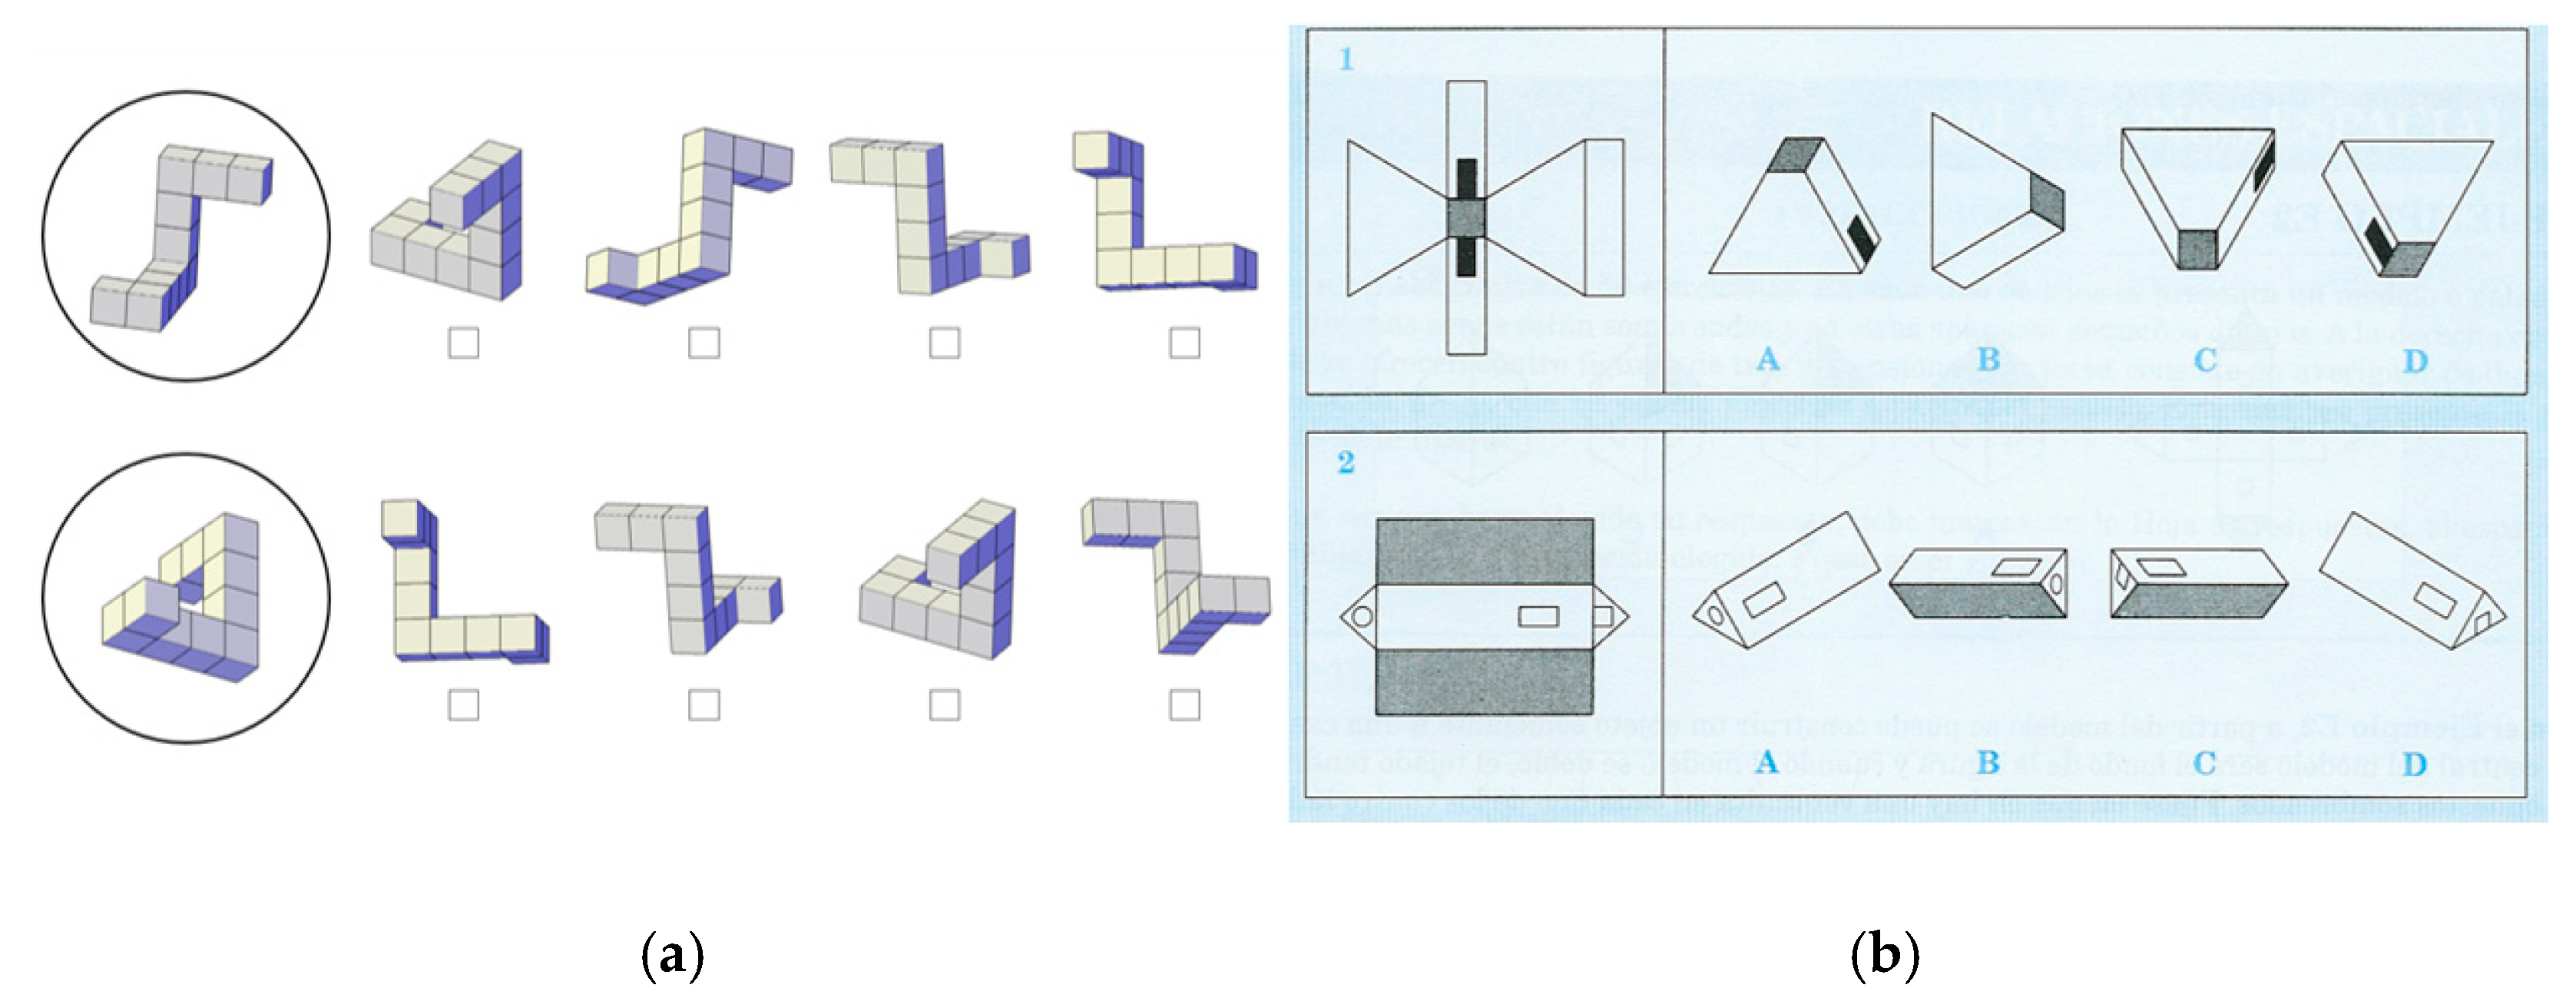 Symmetry Free Full Text International Comparative Pilot Study Of Spatial Skill Development In Engineering Students Through Autonomous Augmented Reality Based Training Html